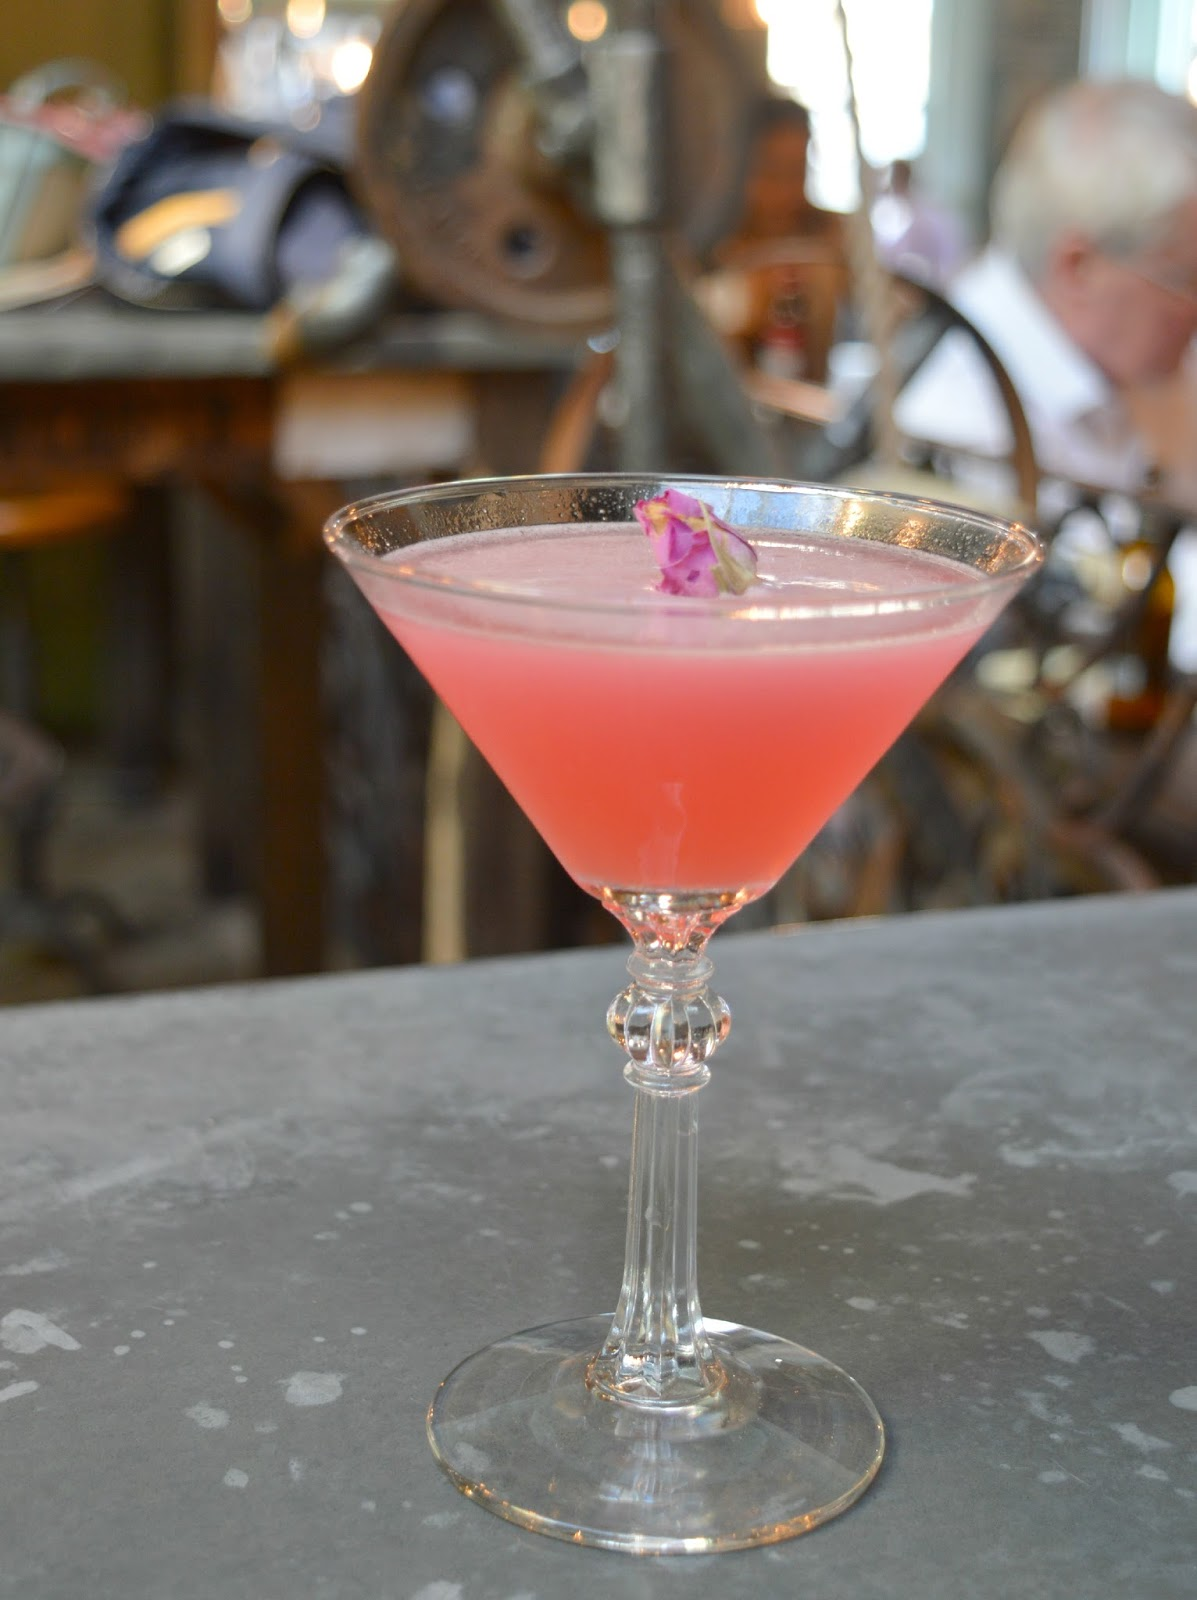 The Botanist Rose Cosmo